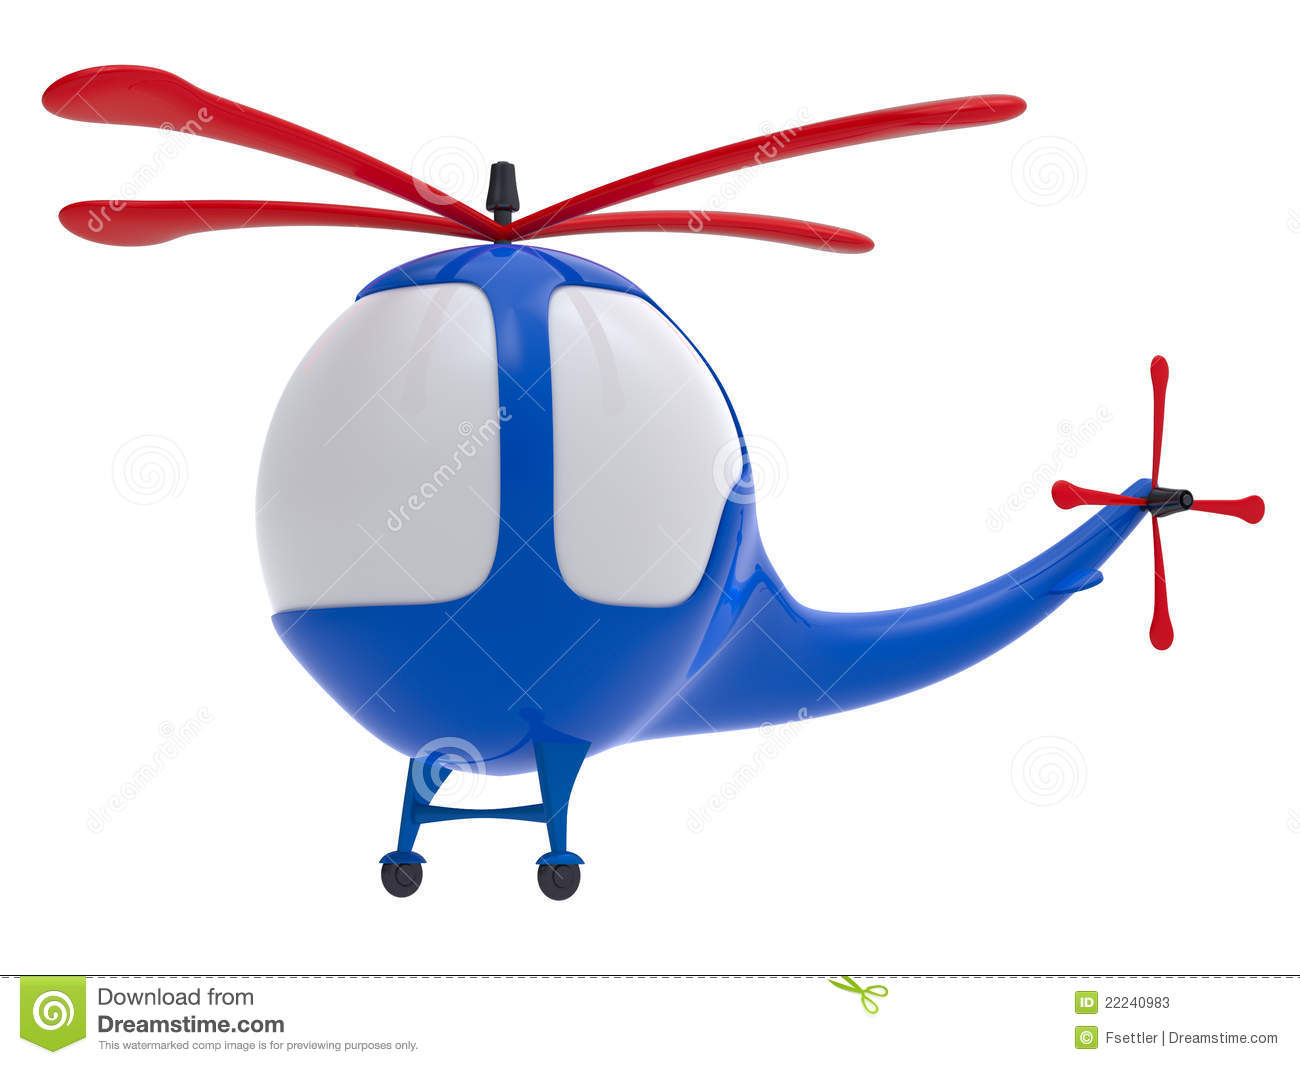 Cartoon Toy Helicopter Stock Photos.